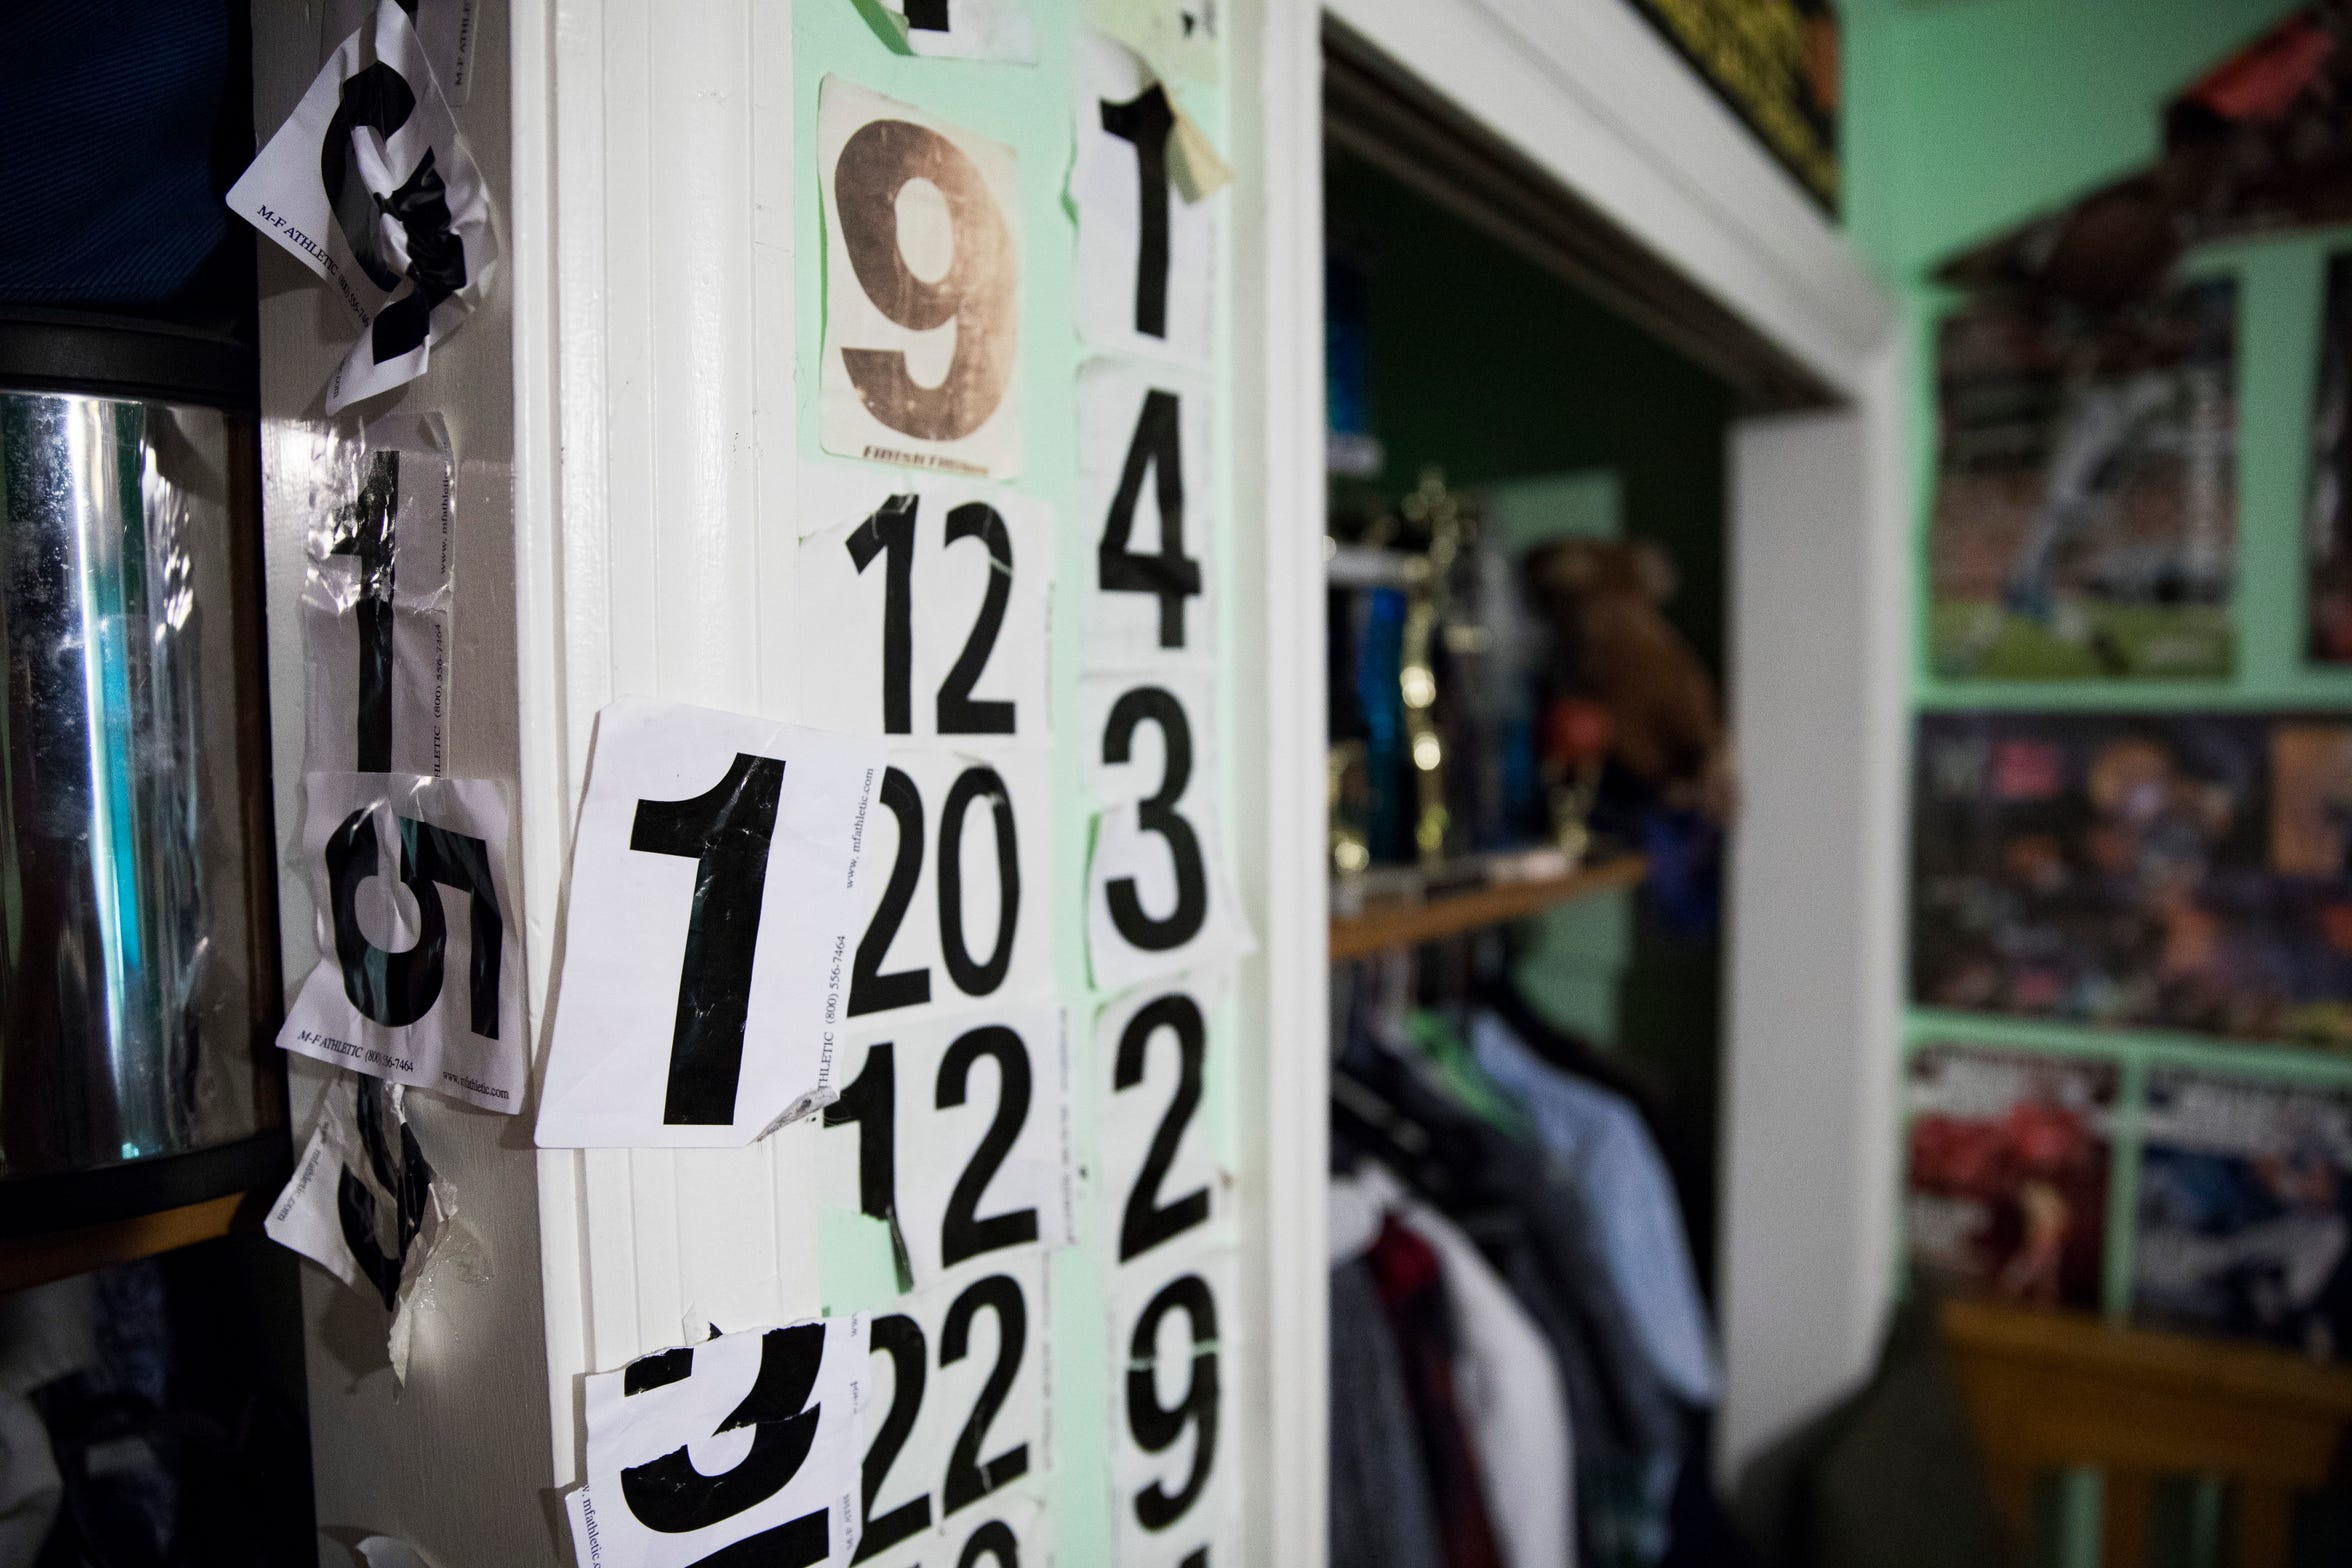 Tucker's running numbers line his bedroom closet in South Salem, Ohio. He has collected them for as long as he can remember.